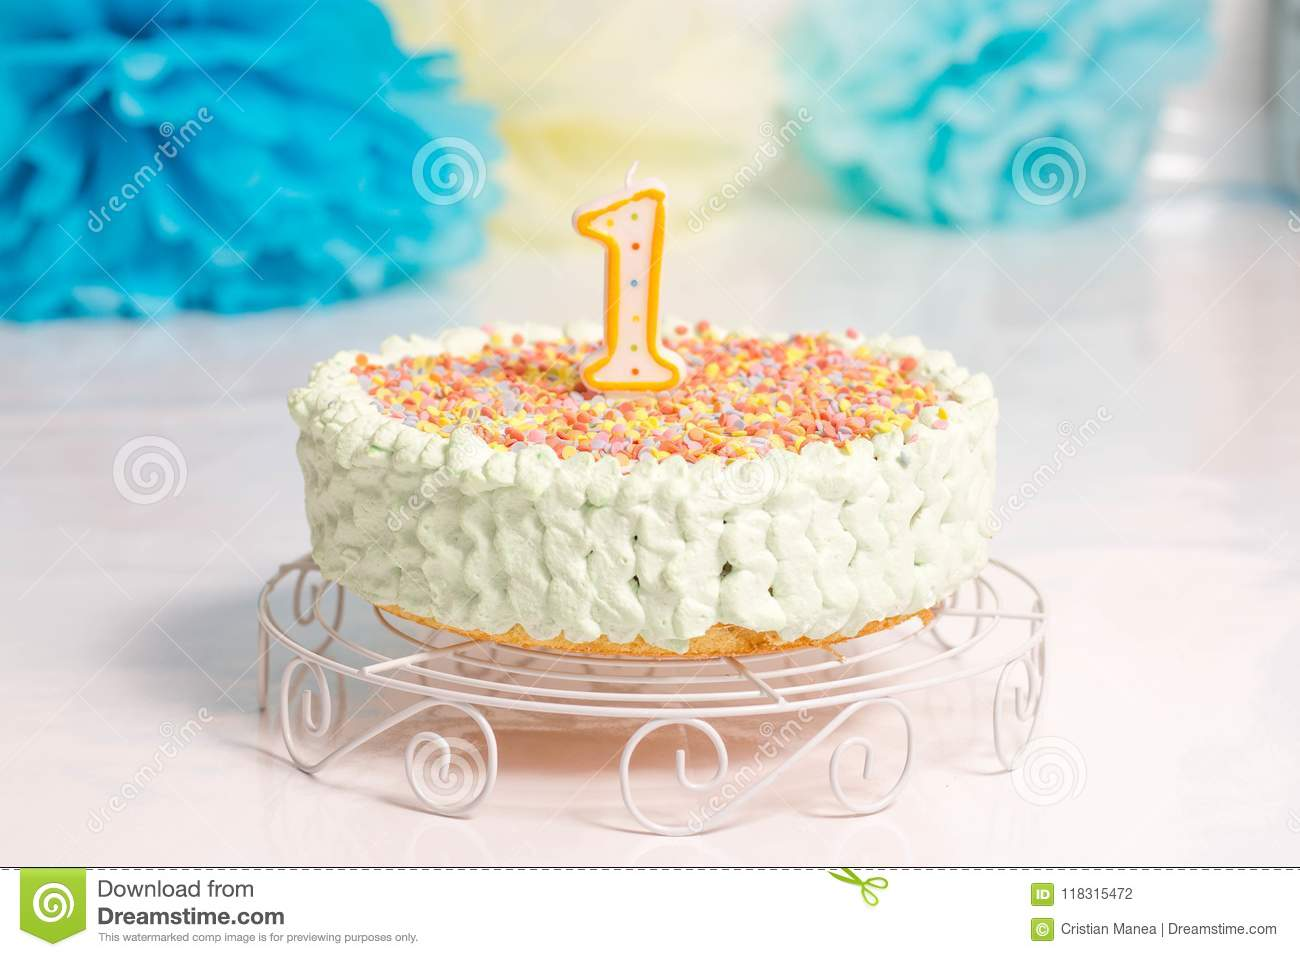 A White Table Holding Birthday Cake For 1 Year Old Child Is Round And Has Big Number One On Top Background Smash The Party